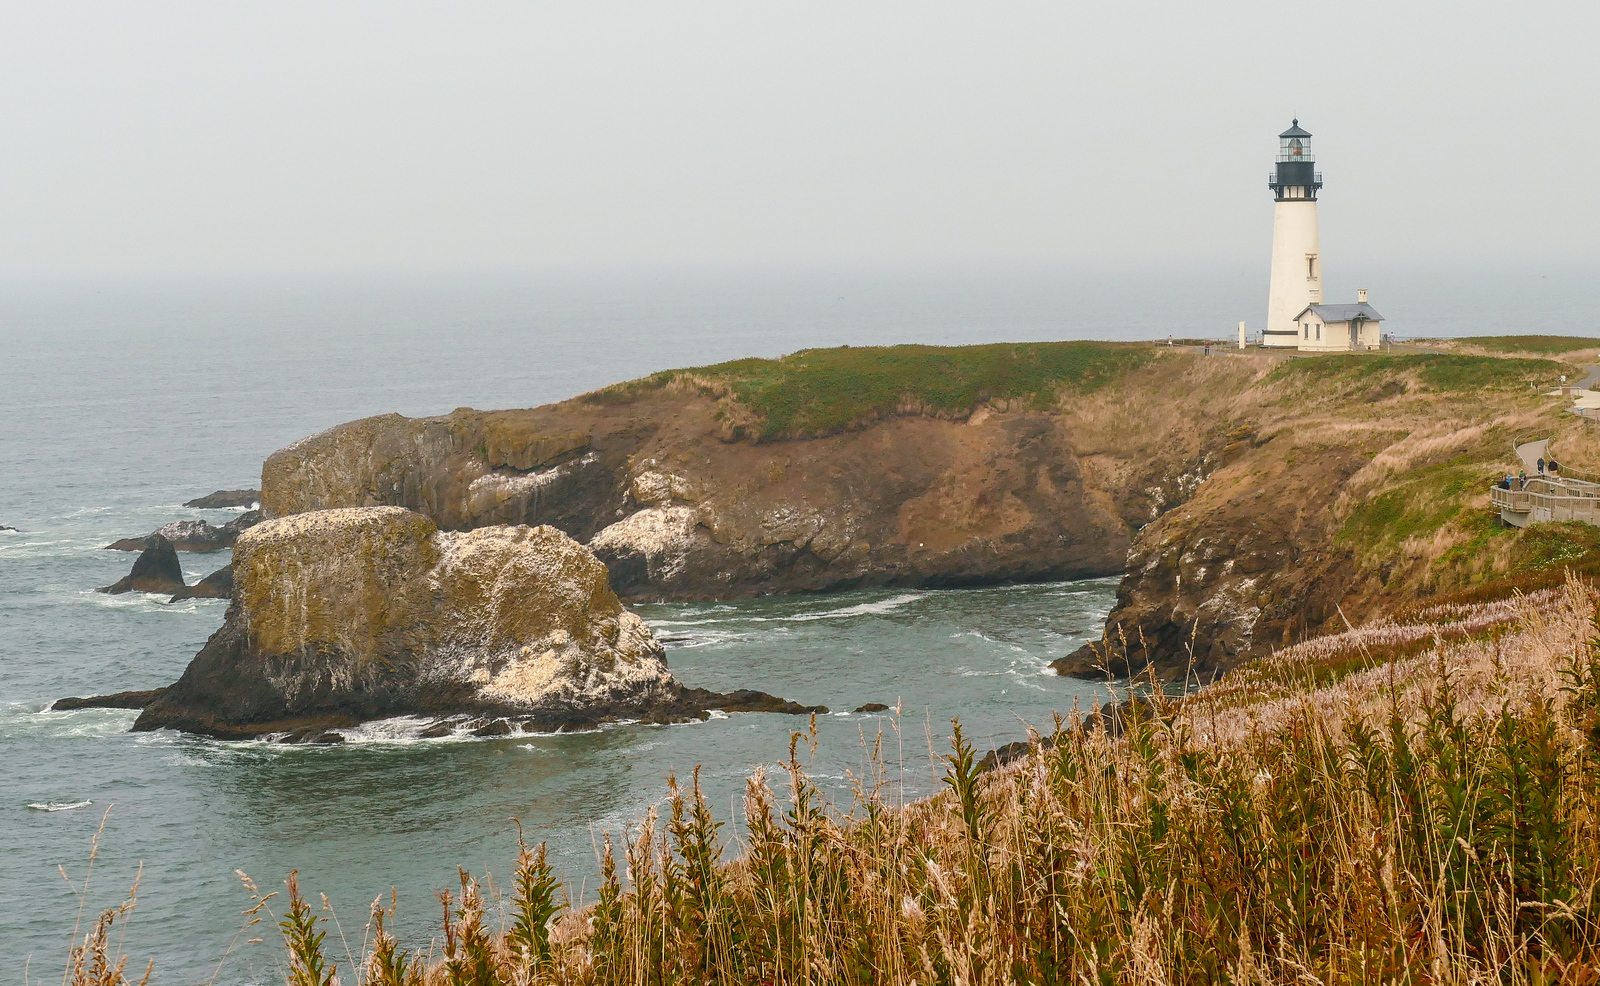 In Newport, Oregon, explore the history and beauty at Yaquina Head Lighthouse. #boomertravel #Oregon #Newport #lighthouse #travel #USA